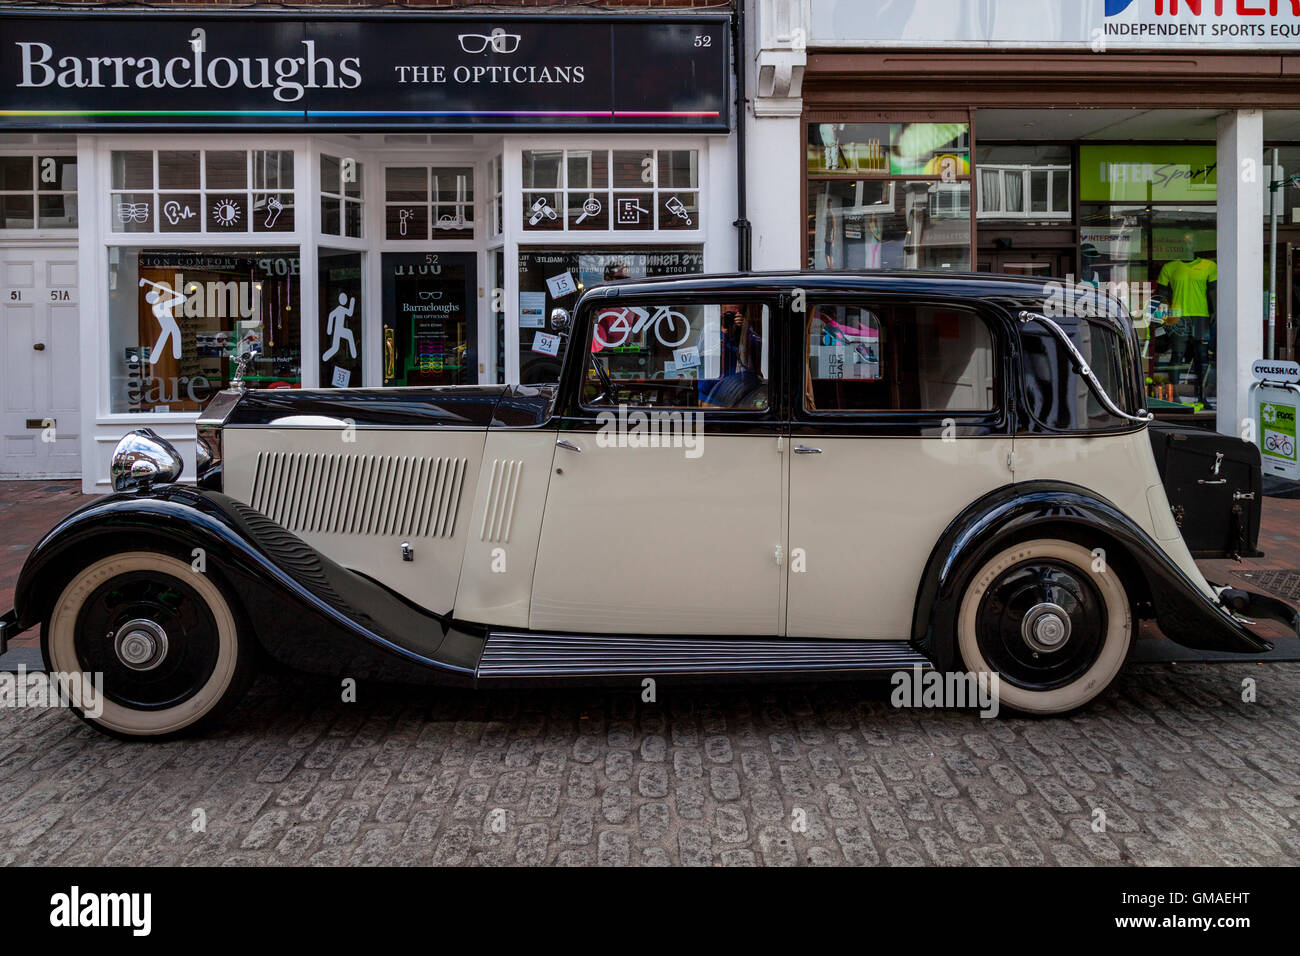 A Vintage Rolls Royce Motor Car Parked In Lewes High Street, Lewes, Sussex, UK - Stock Image